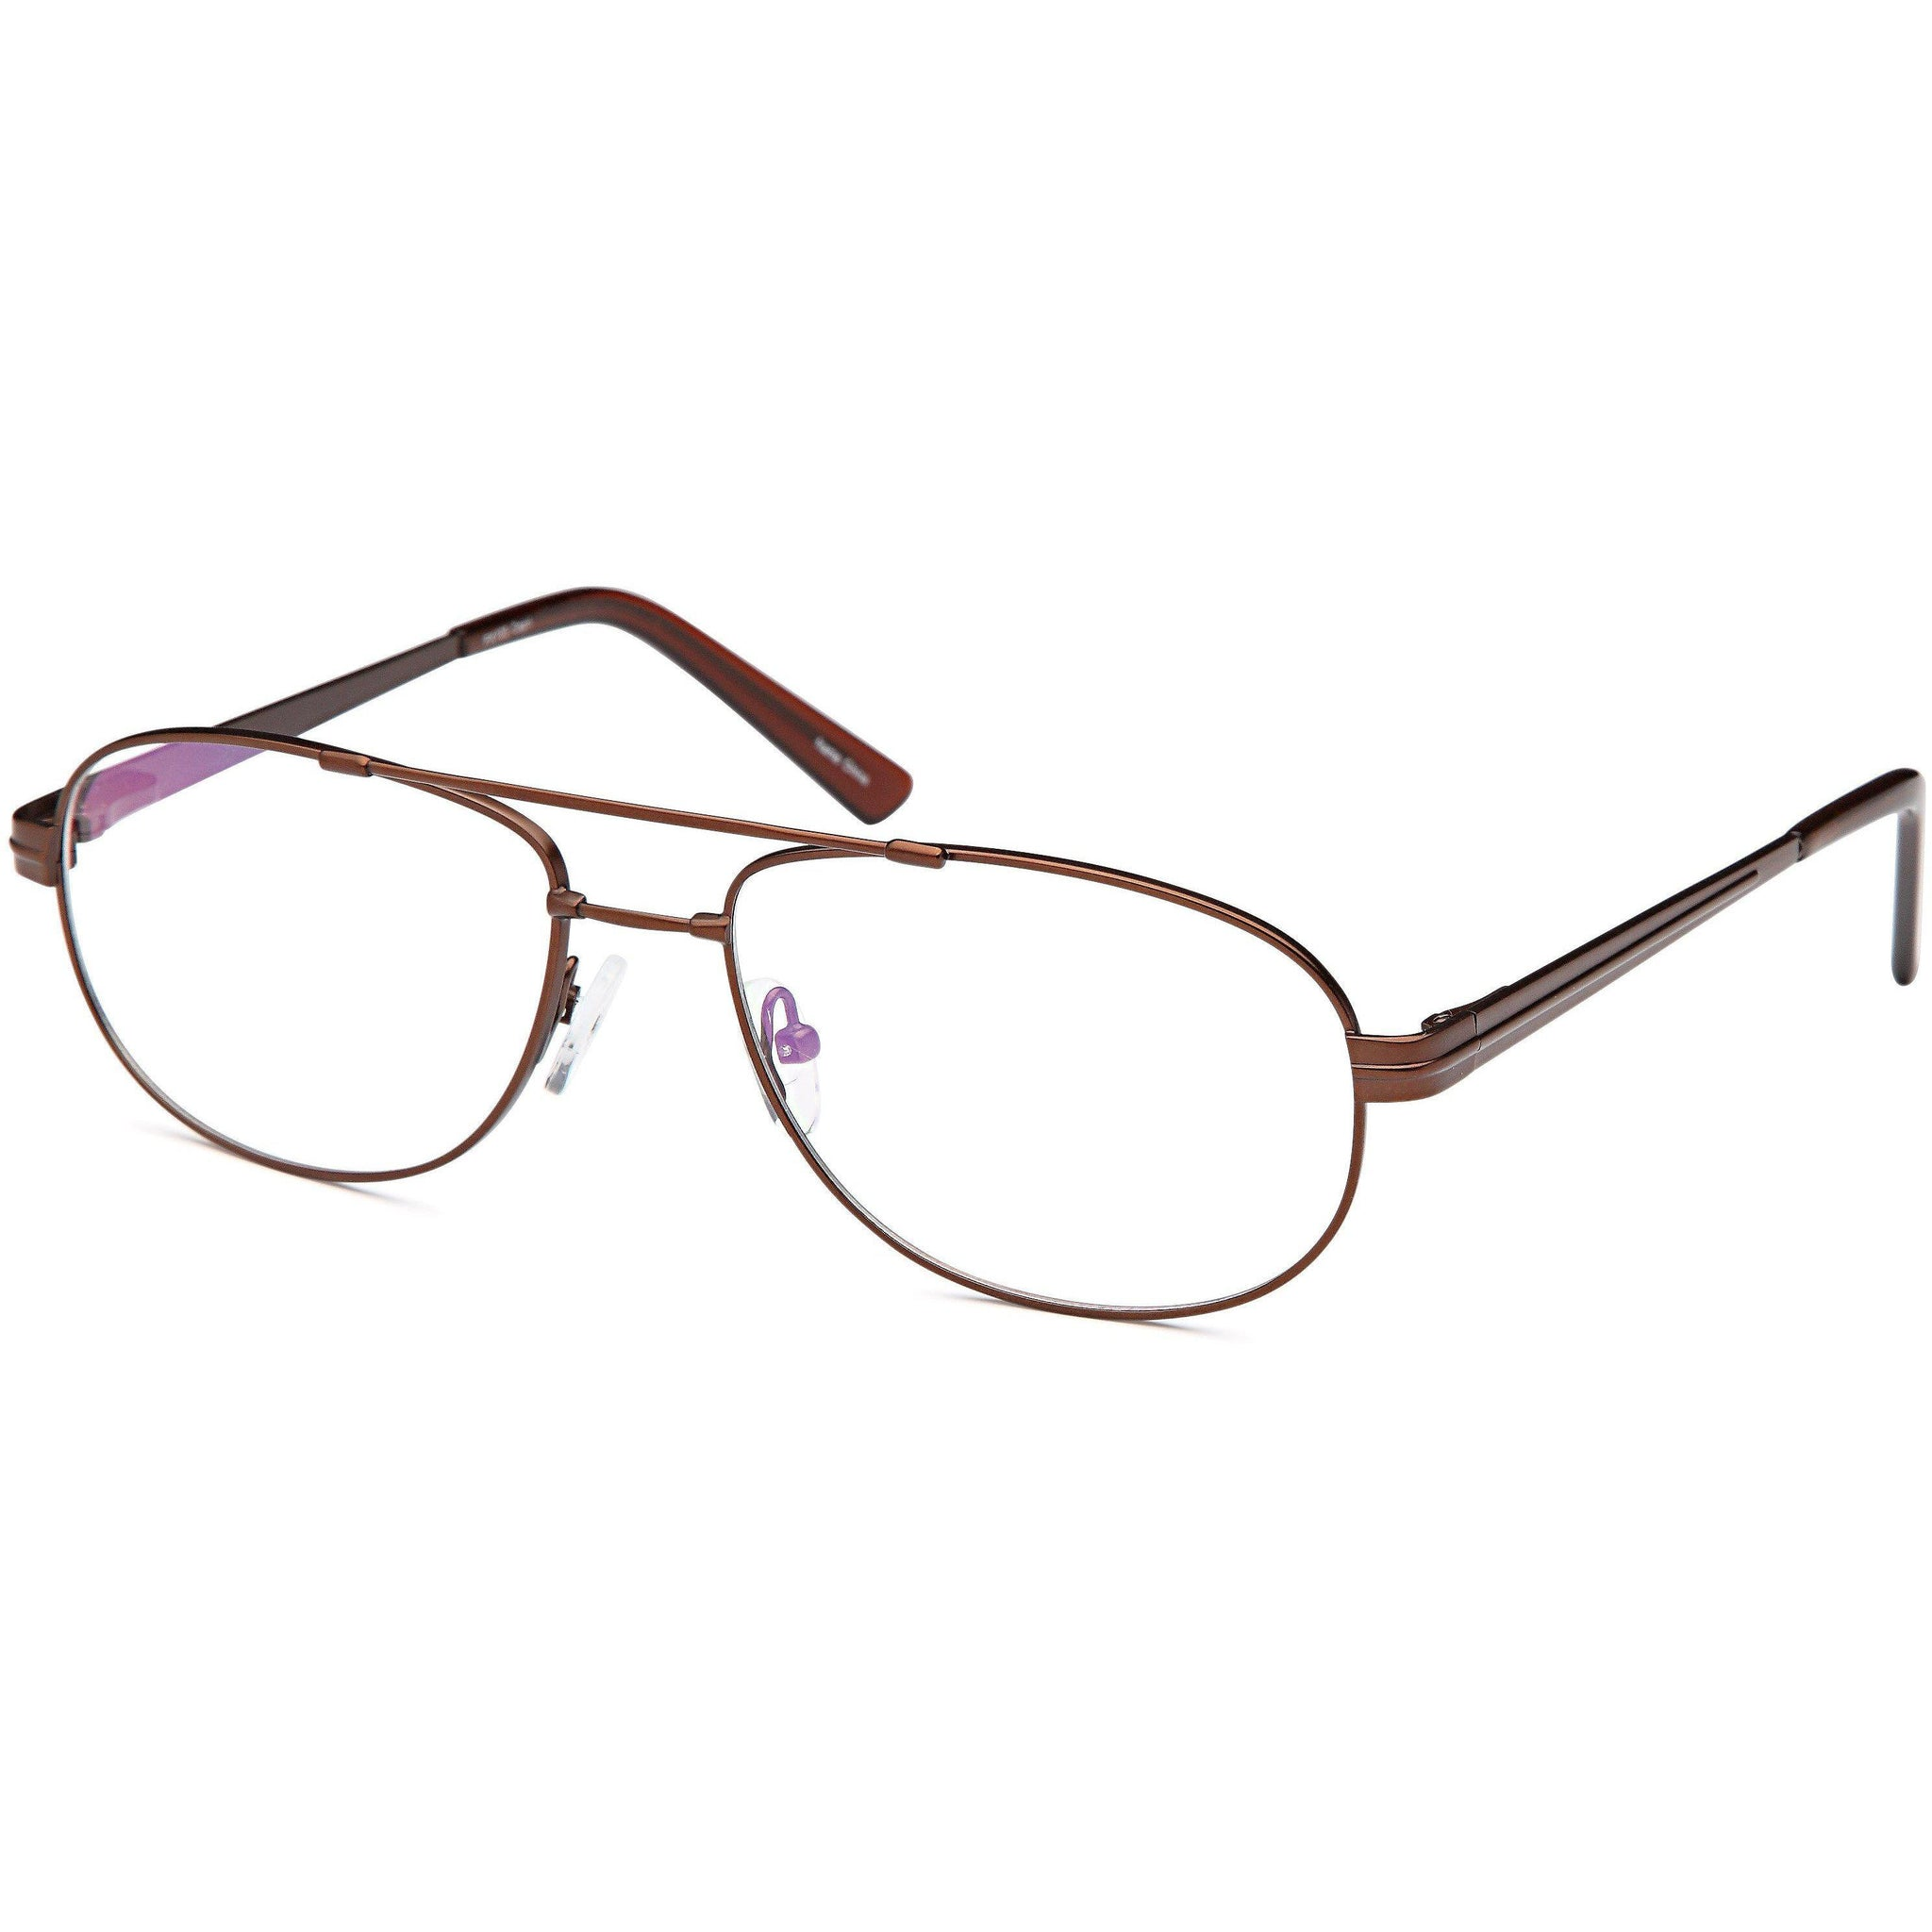 Titanium Prescription Glasses FX 103 Eyeglasses Frame